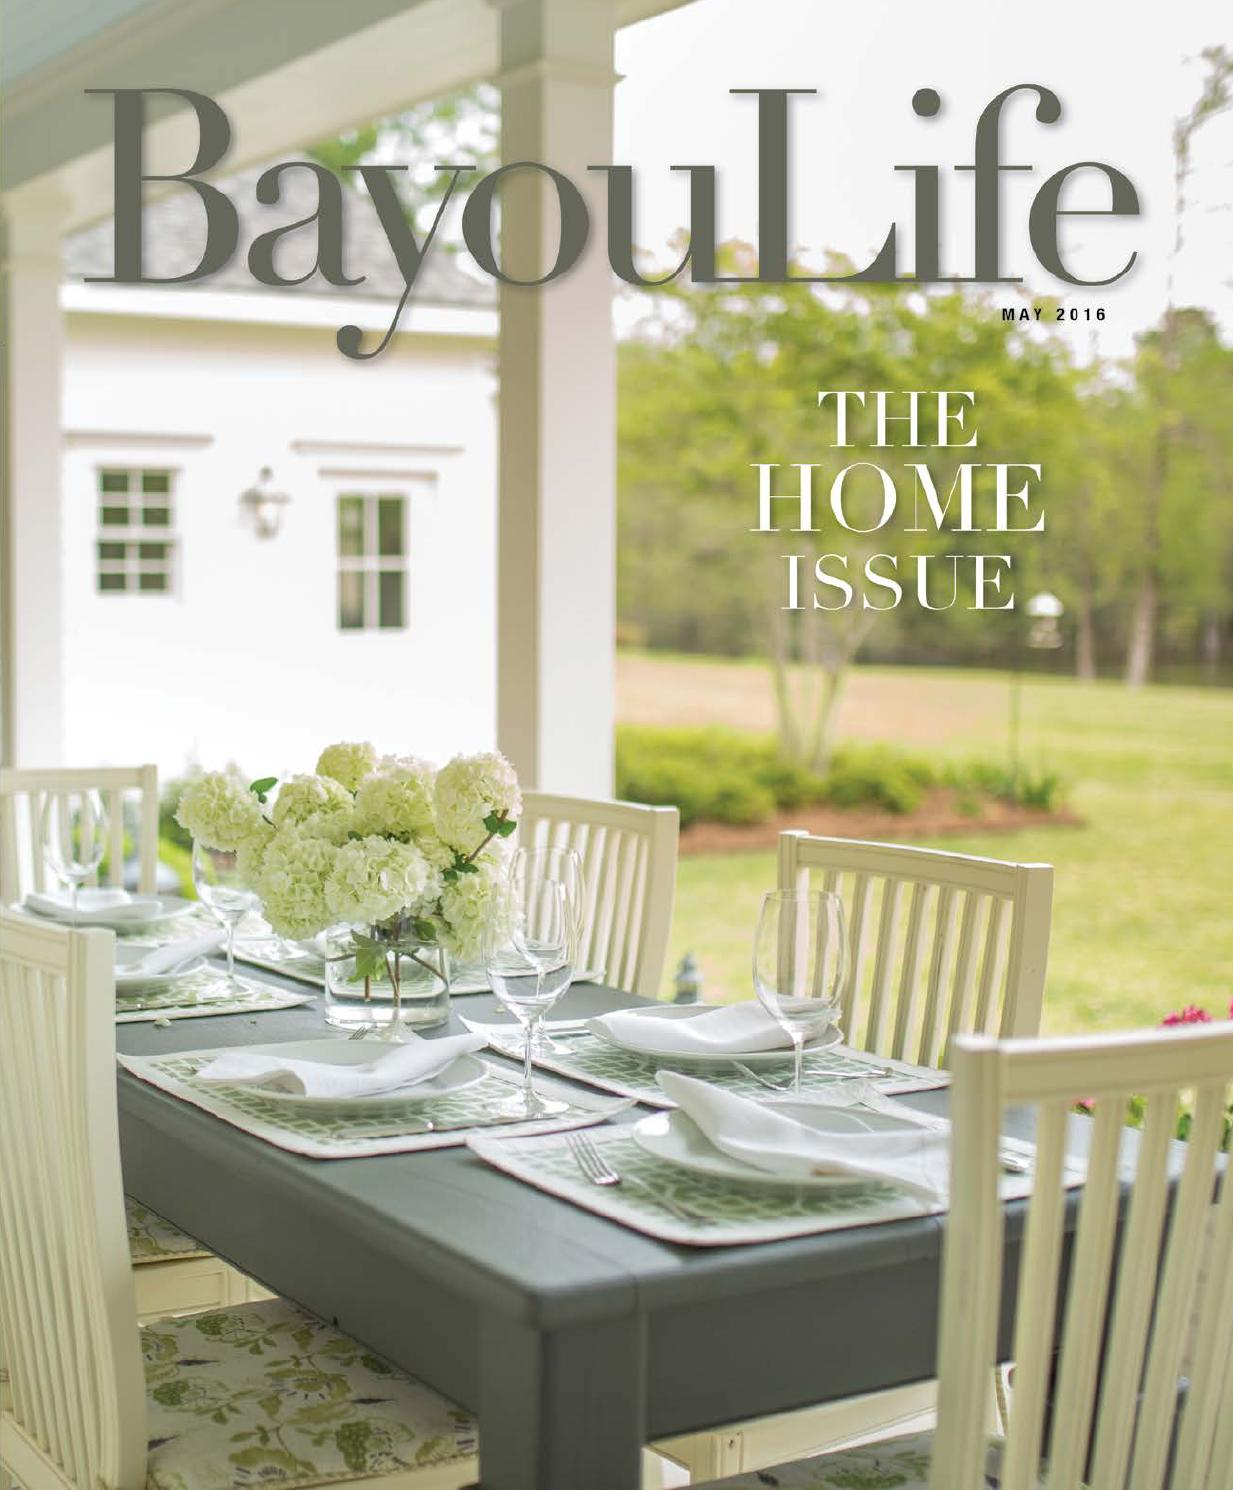 draper 2015 by lifestyle publications issuu bayoulife magazine 2016